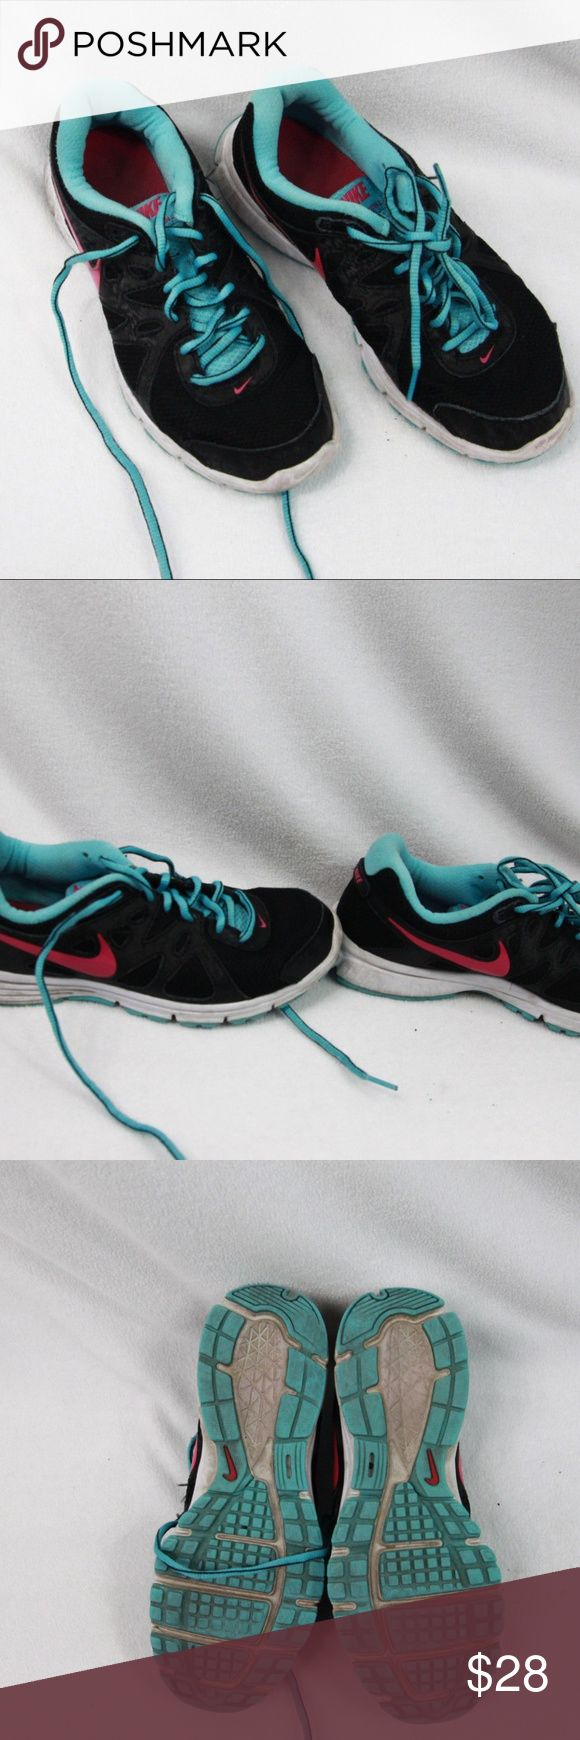 Nike Revolution 2 Running Shoes Sz 7.5M Nice pair of Nike Revolution 2 running shoes in size 7.5 M. See pics for wear. Some slight sole wear at heels, some dirt on white side soles. Not used much for running, mainly walking. Nike Shoes Athletic Shoes